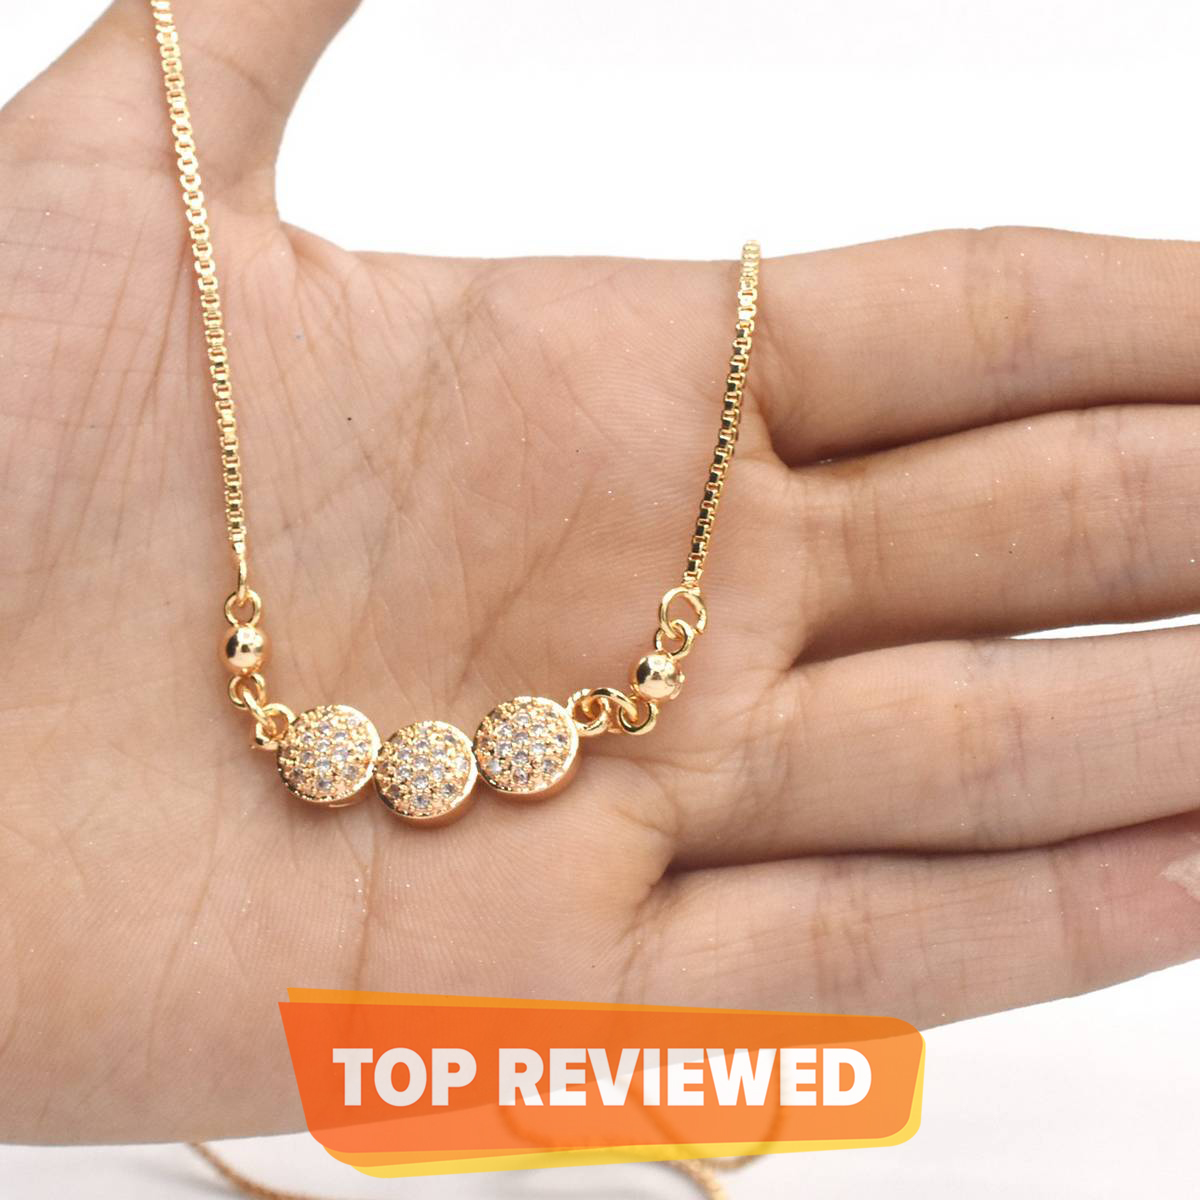 Gold Color Rhinestone Pendant Long Chain Necklaces For Women Girl Gift